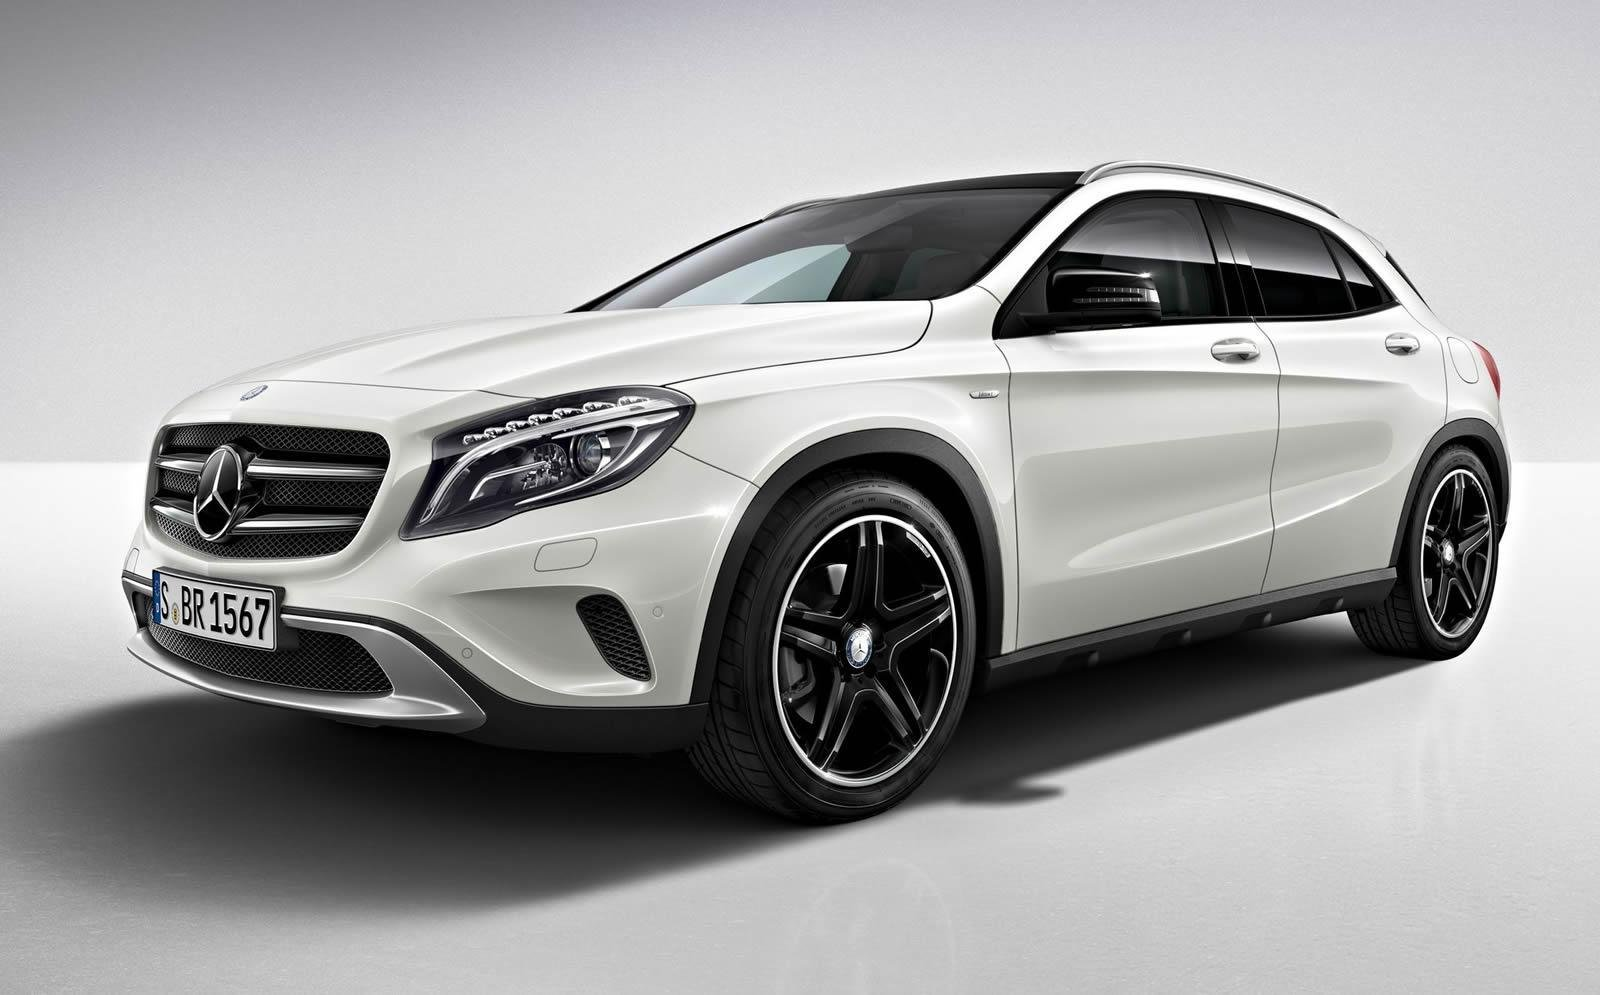 2015 mercedes benz gla class edition 1 review top speed. Black Bedroom Furniture Sets. Home Design Ideas